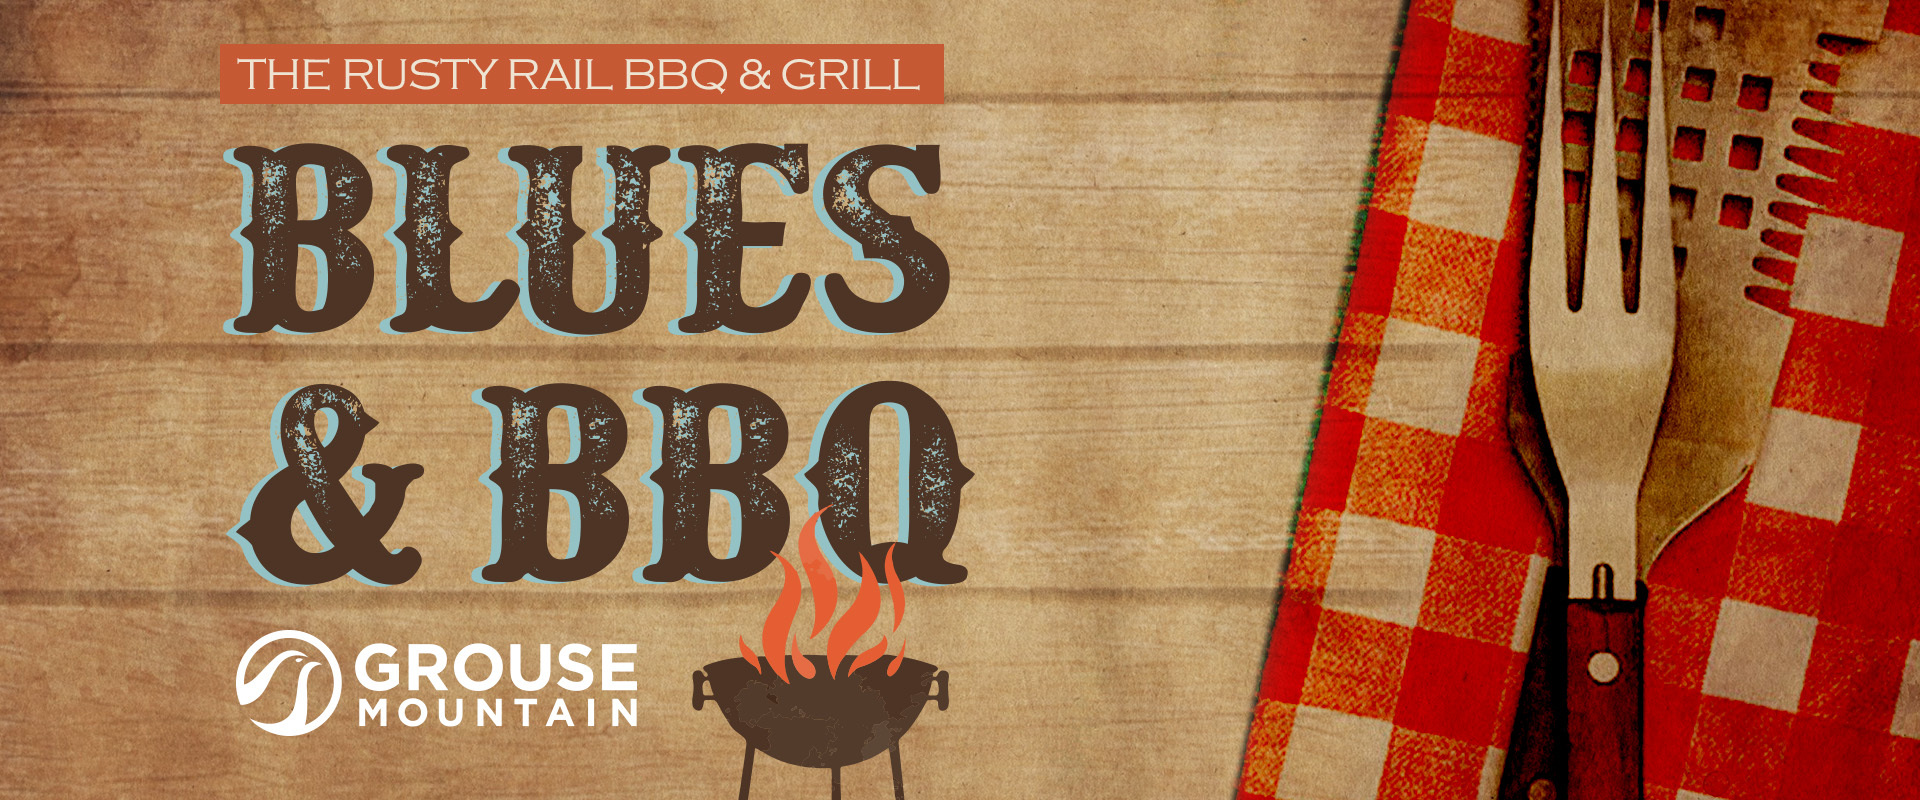 Join us at the Rusty Rail BBQ and Grill an evening of Blues and BBQ.